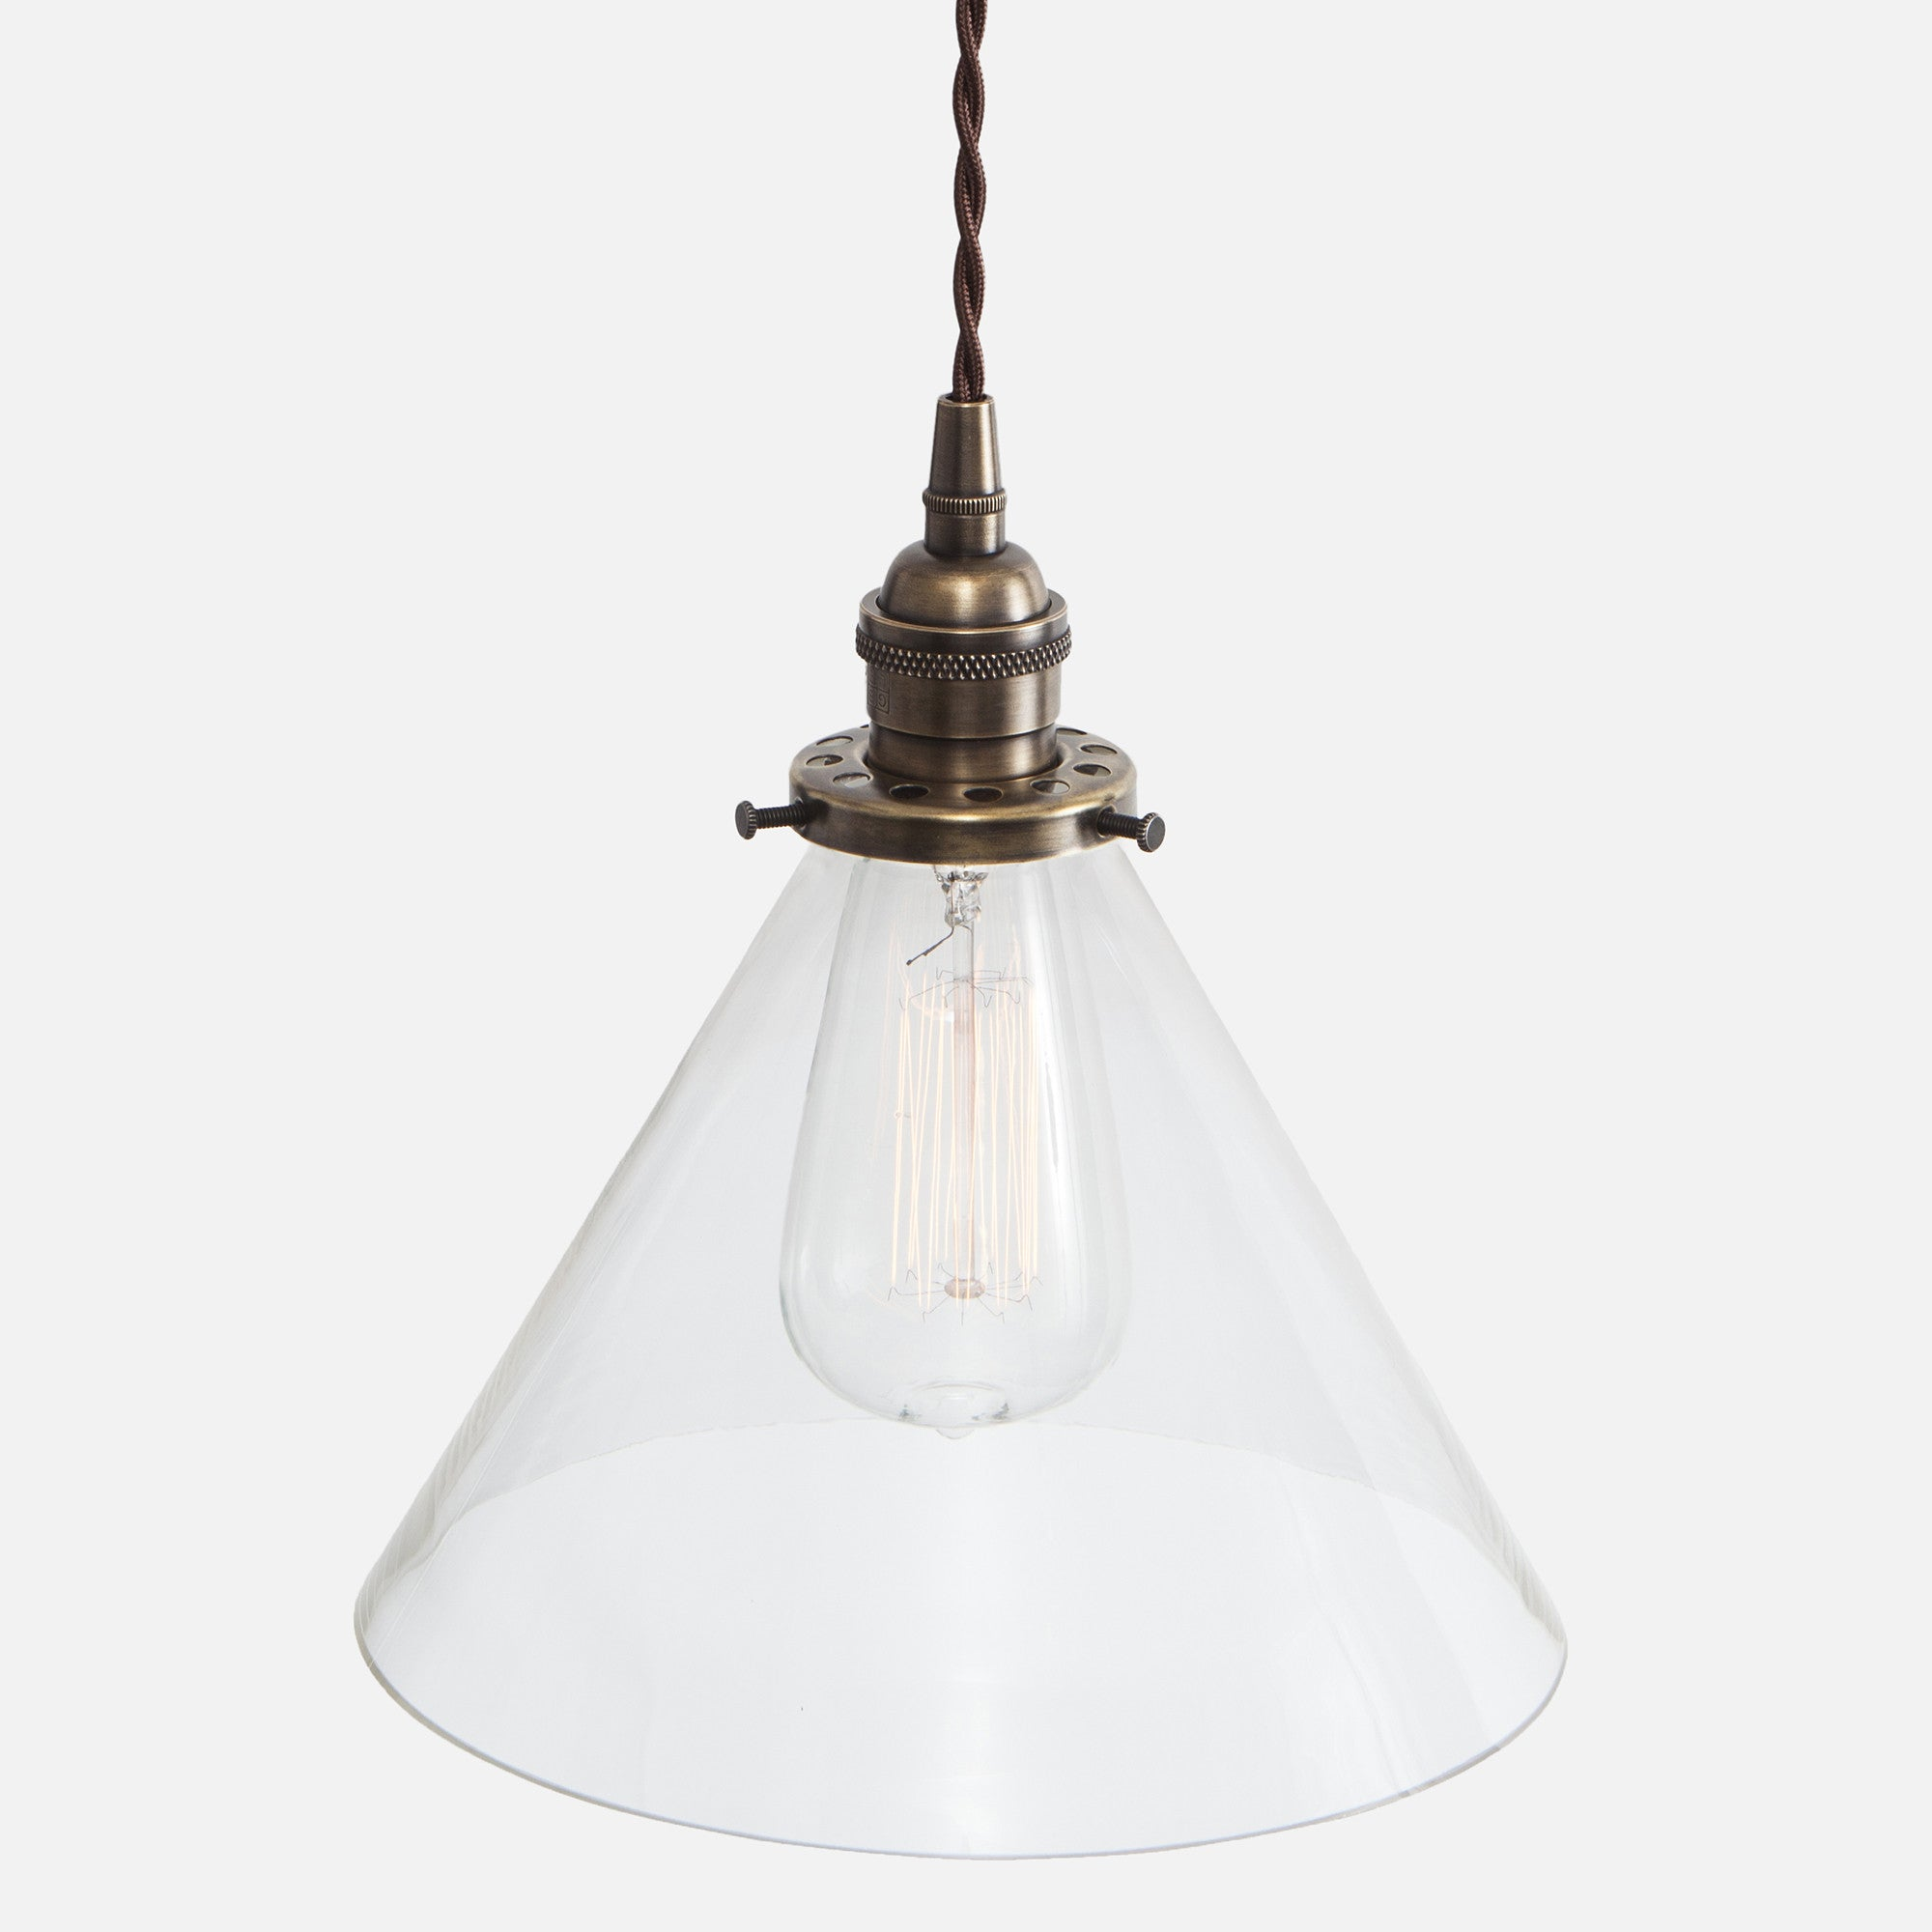 Vintage Classics Pendant Lighting Collection Flea Market Rx - Pendant light collections